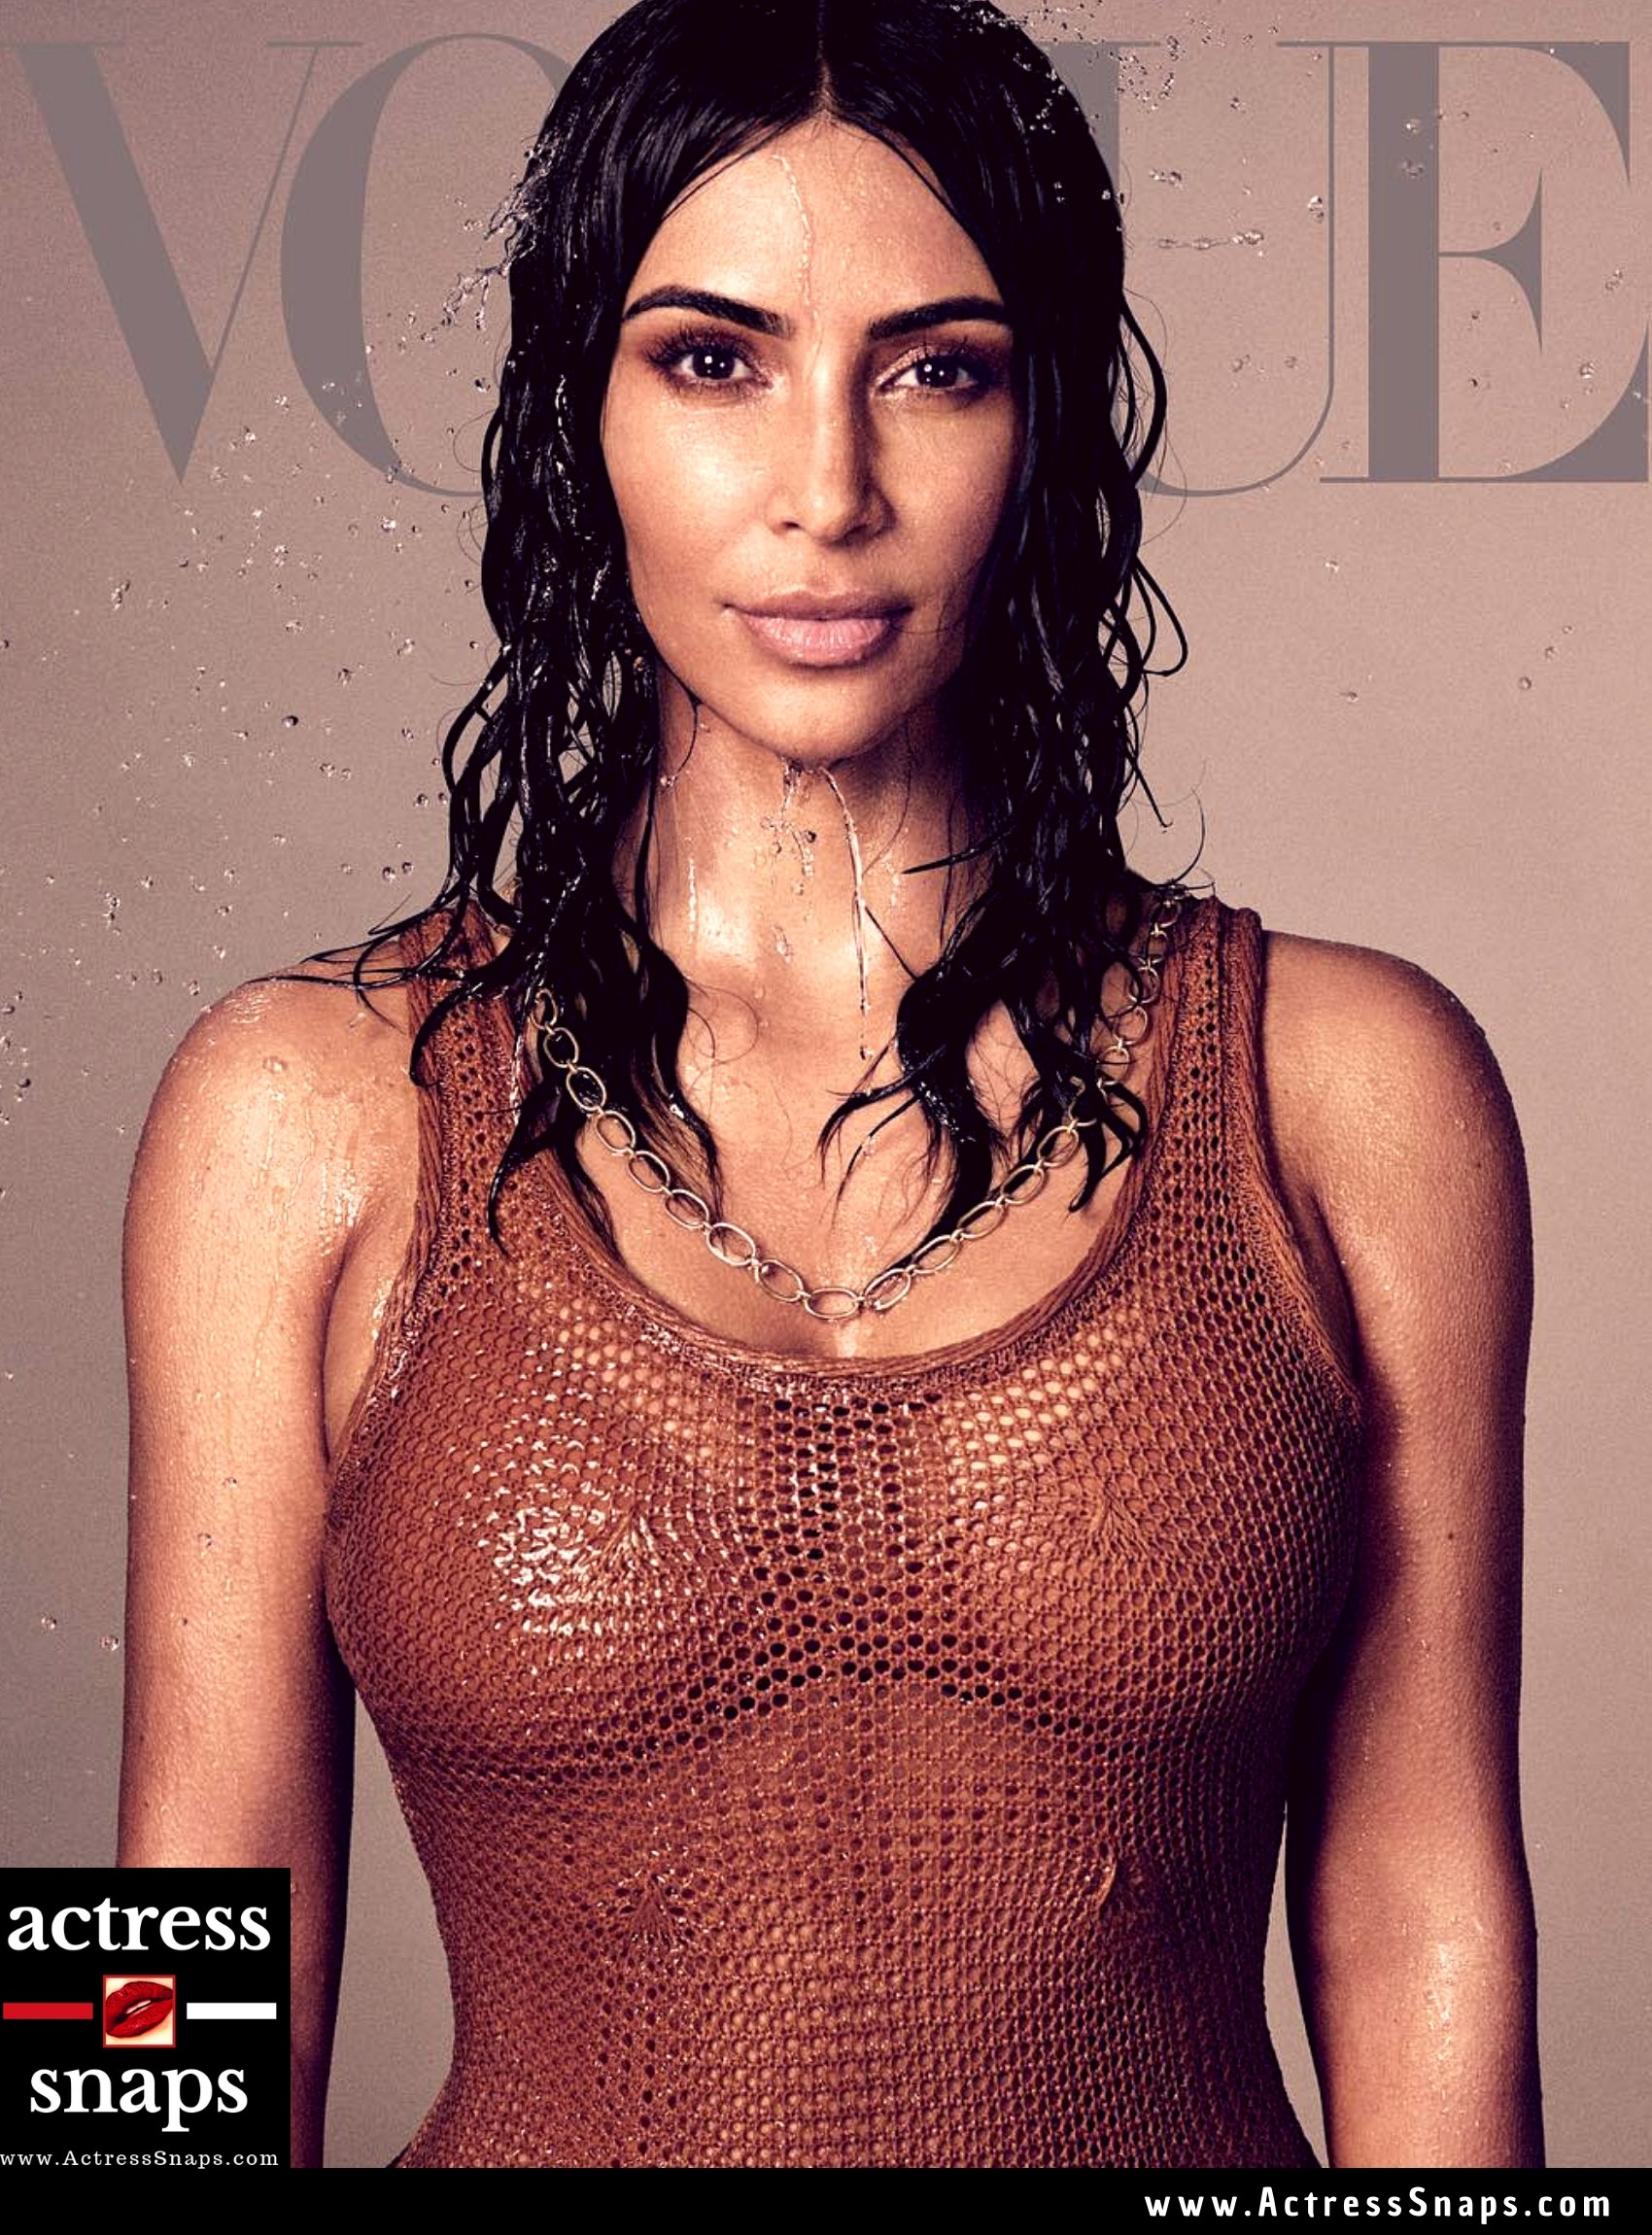 Kim Kardashian in Vogue Magazine - Sexy Actress Pictures | Hot Actress Pictures - ActressSnaps.com